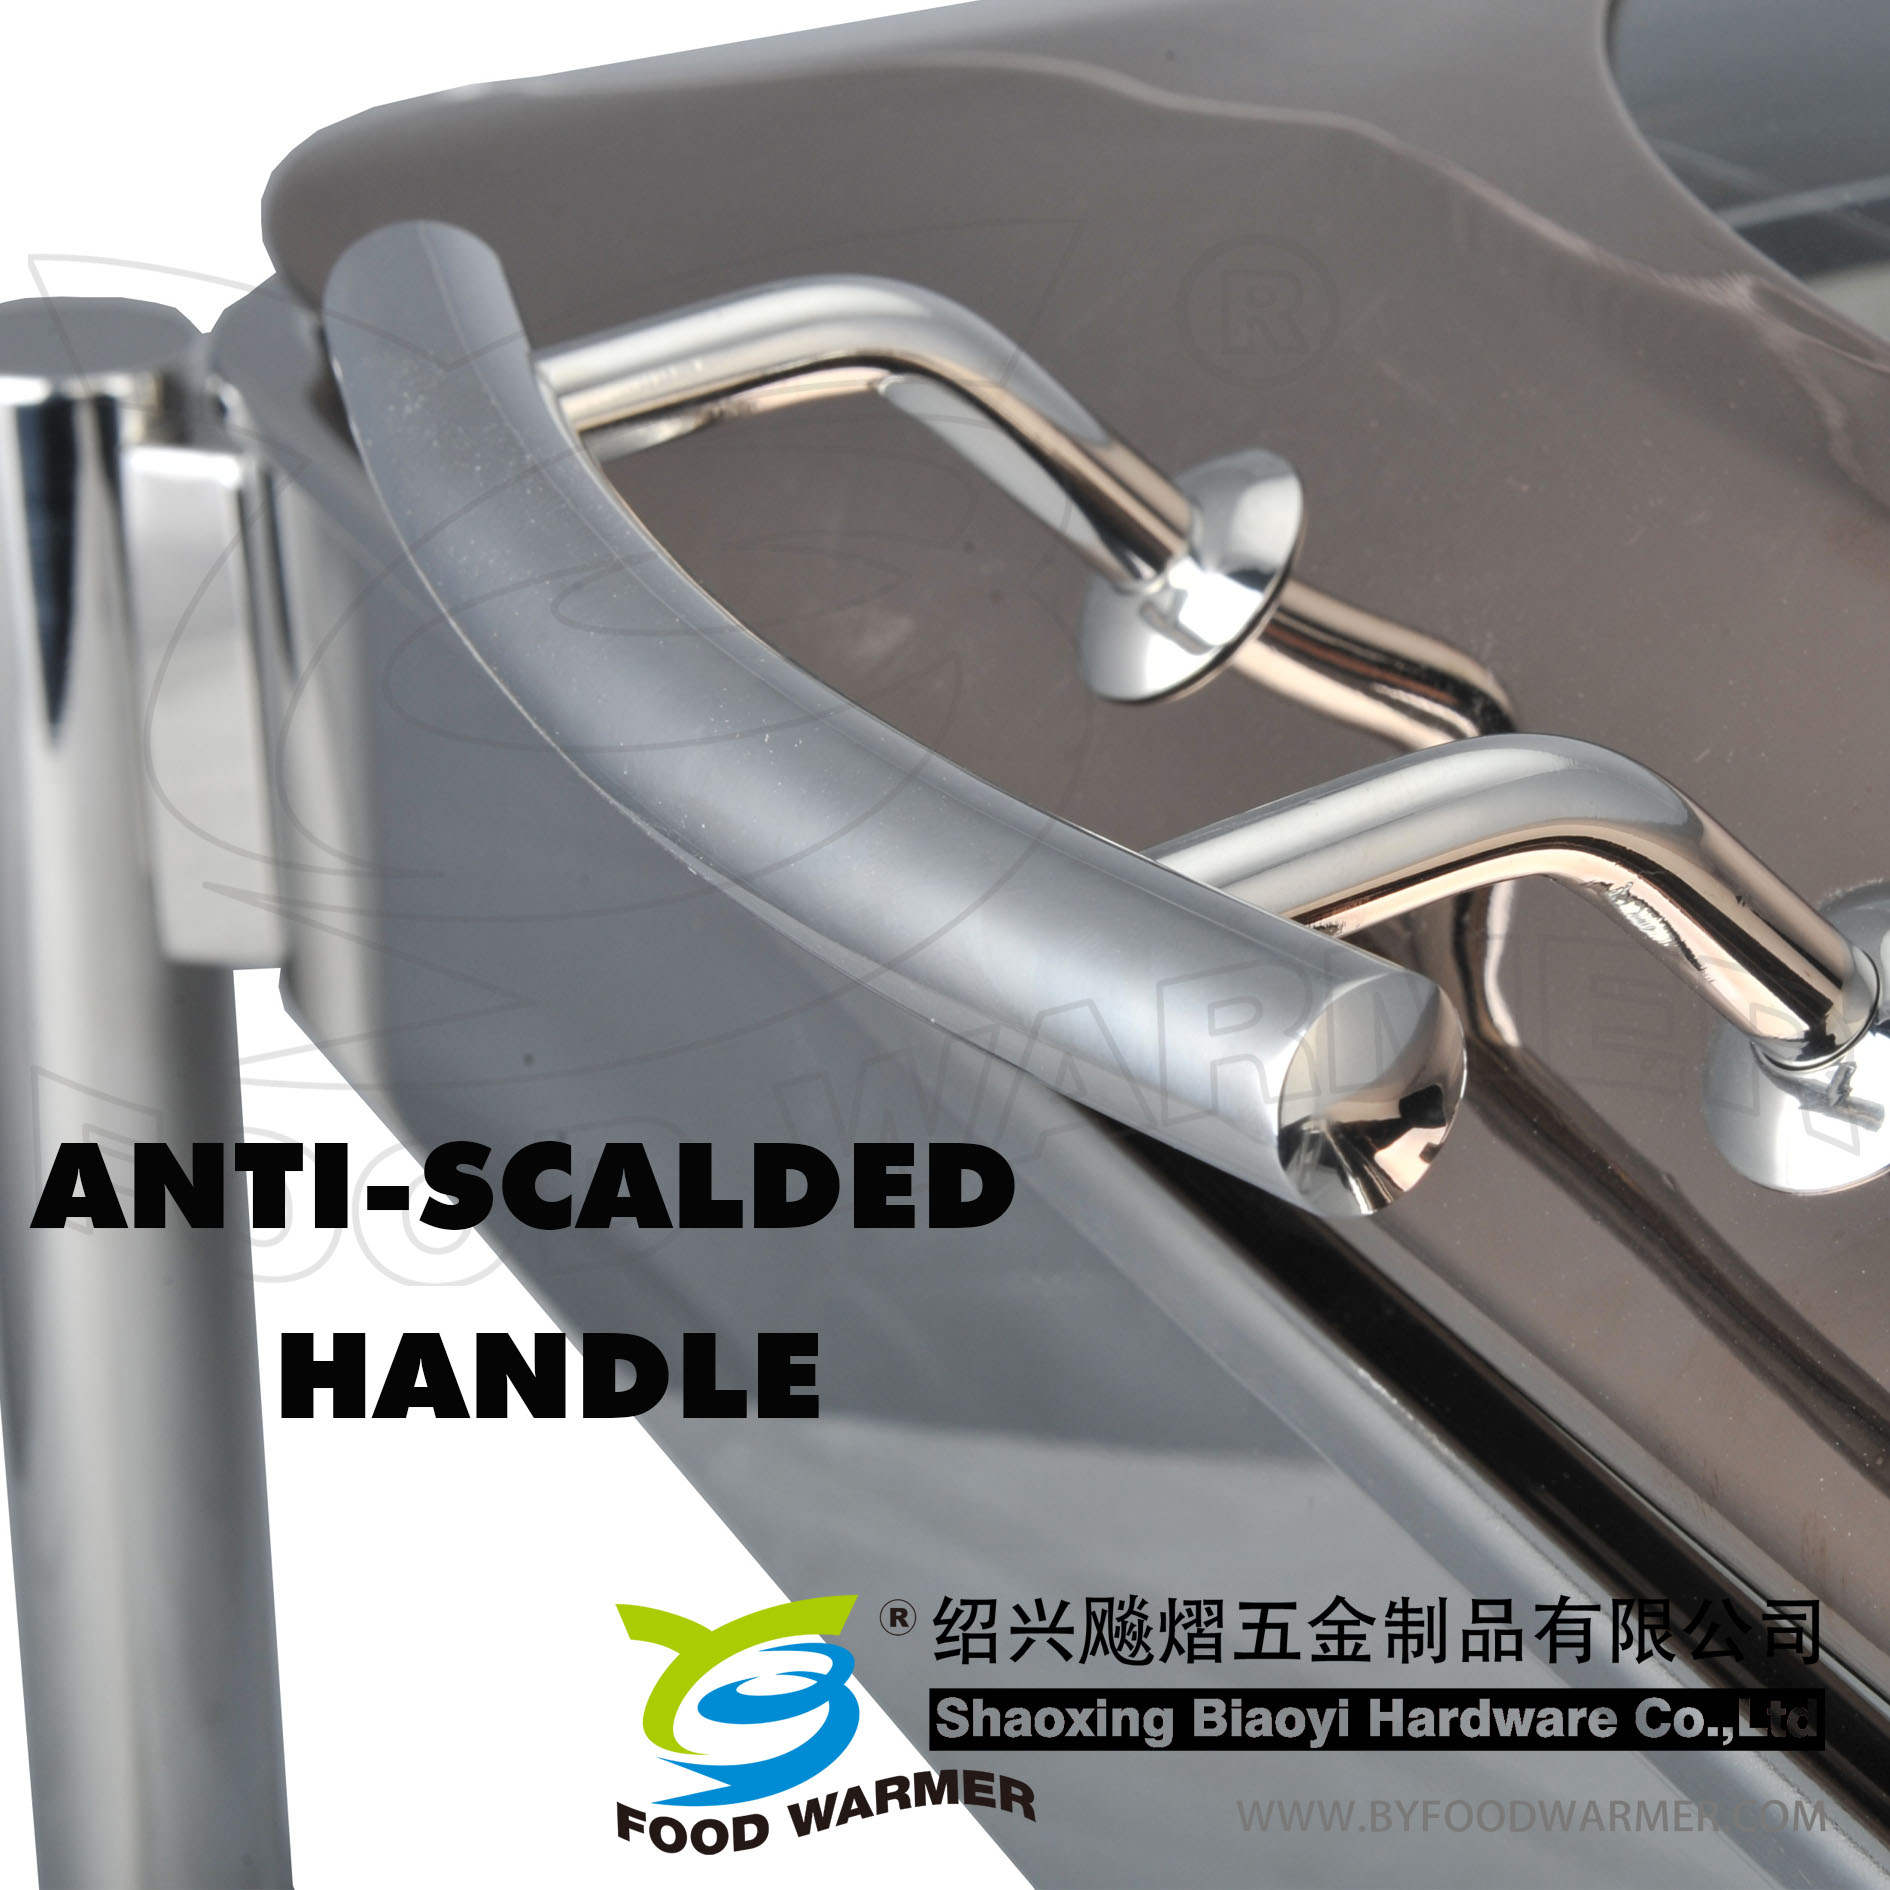 Anti-scalded handle